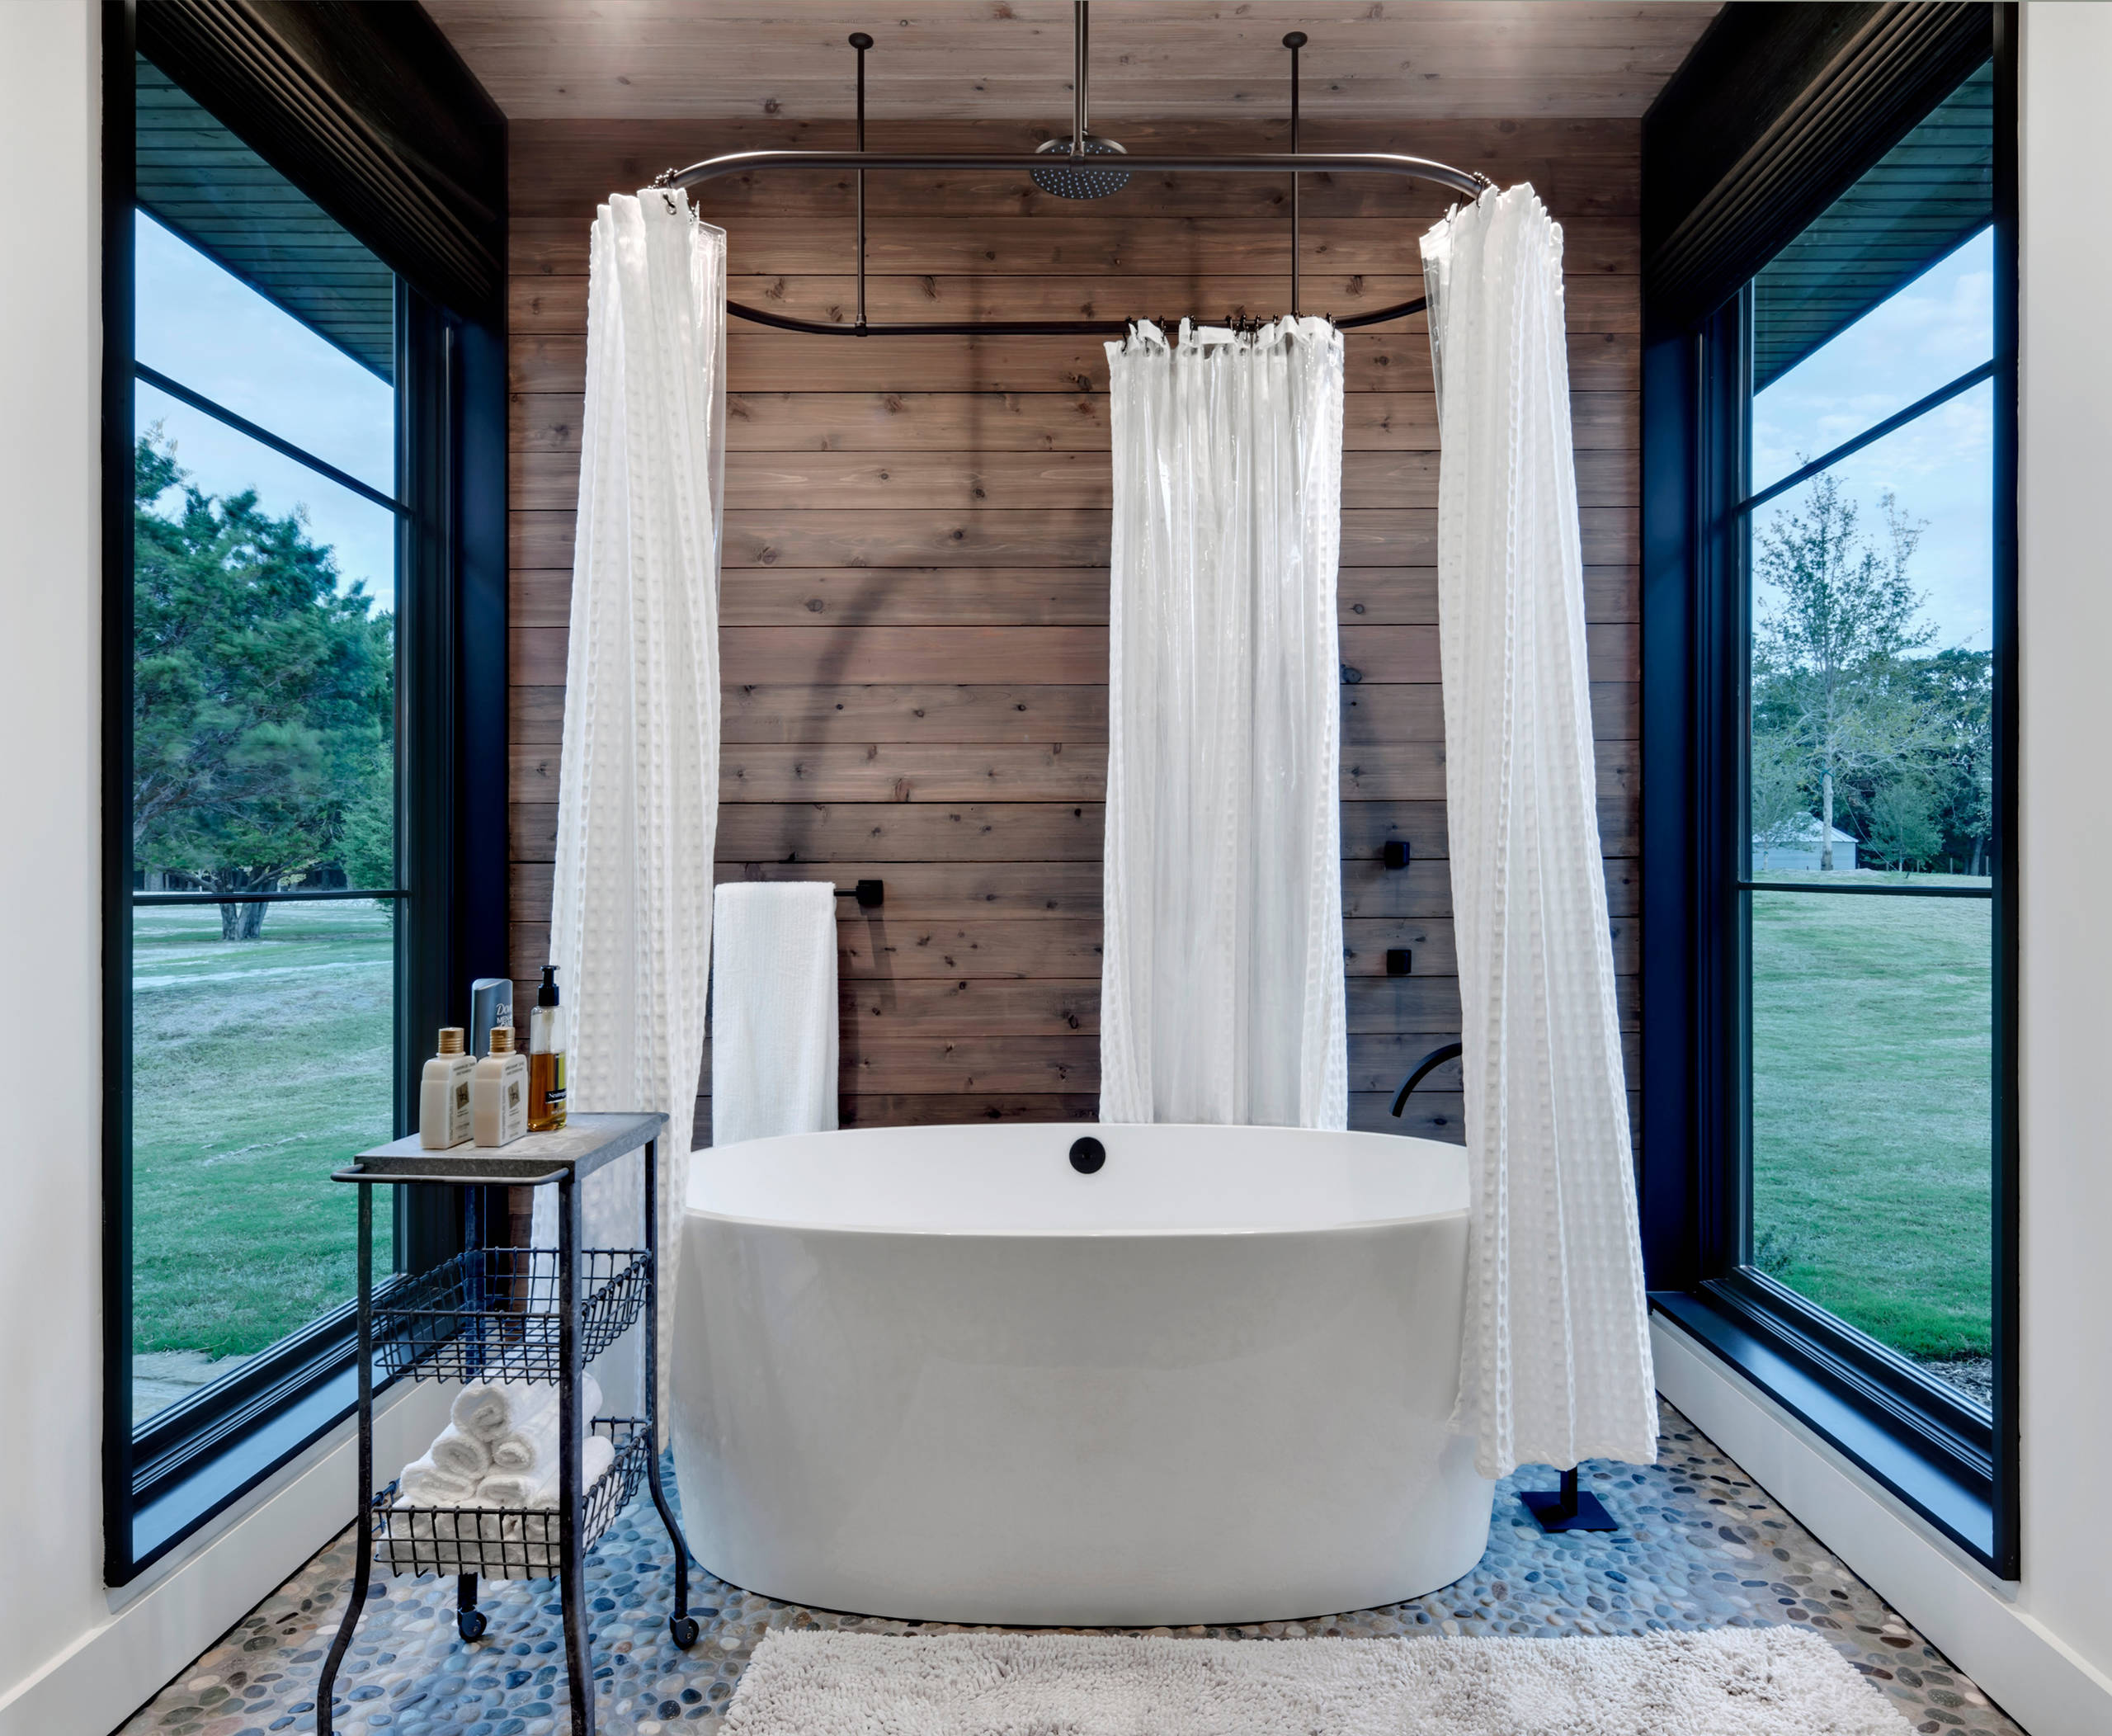 Bathroom Designs That'll Make It Your Favourite Place (13)